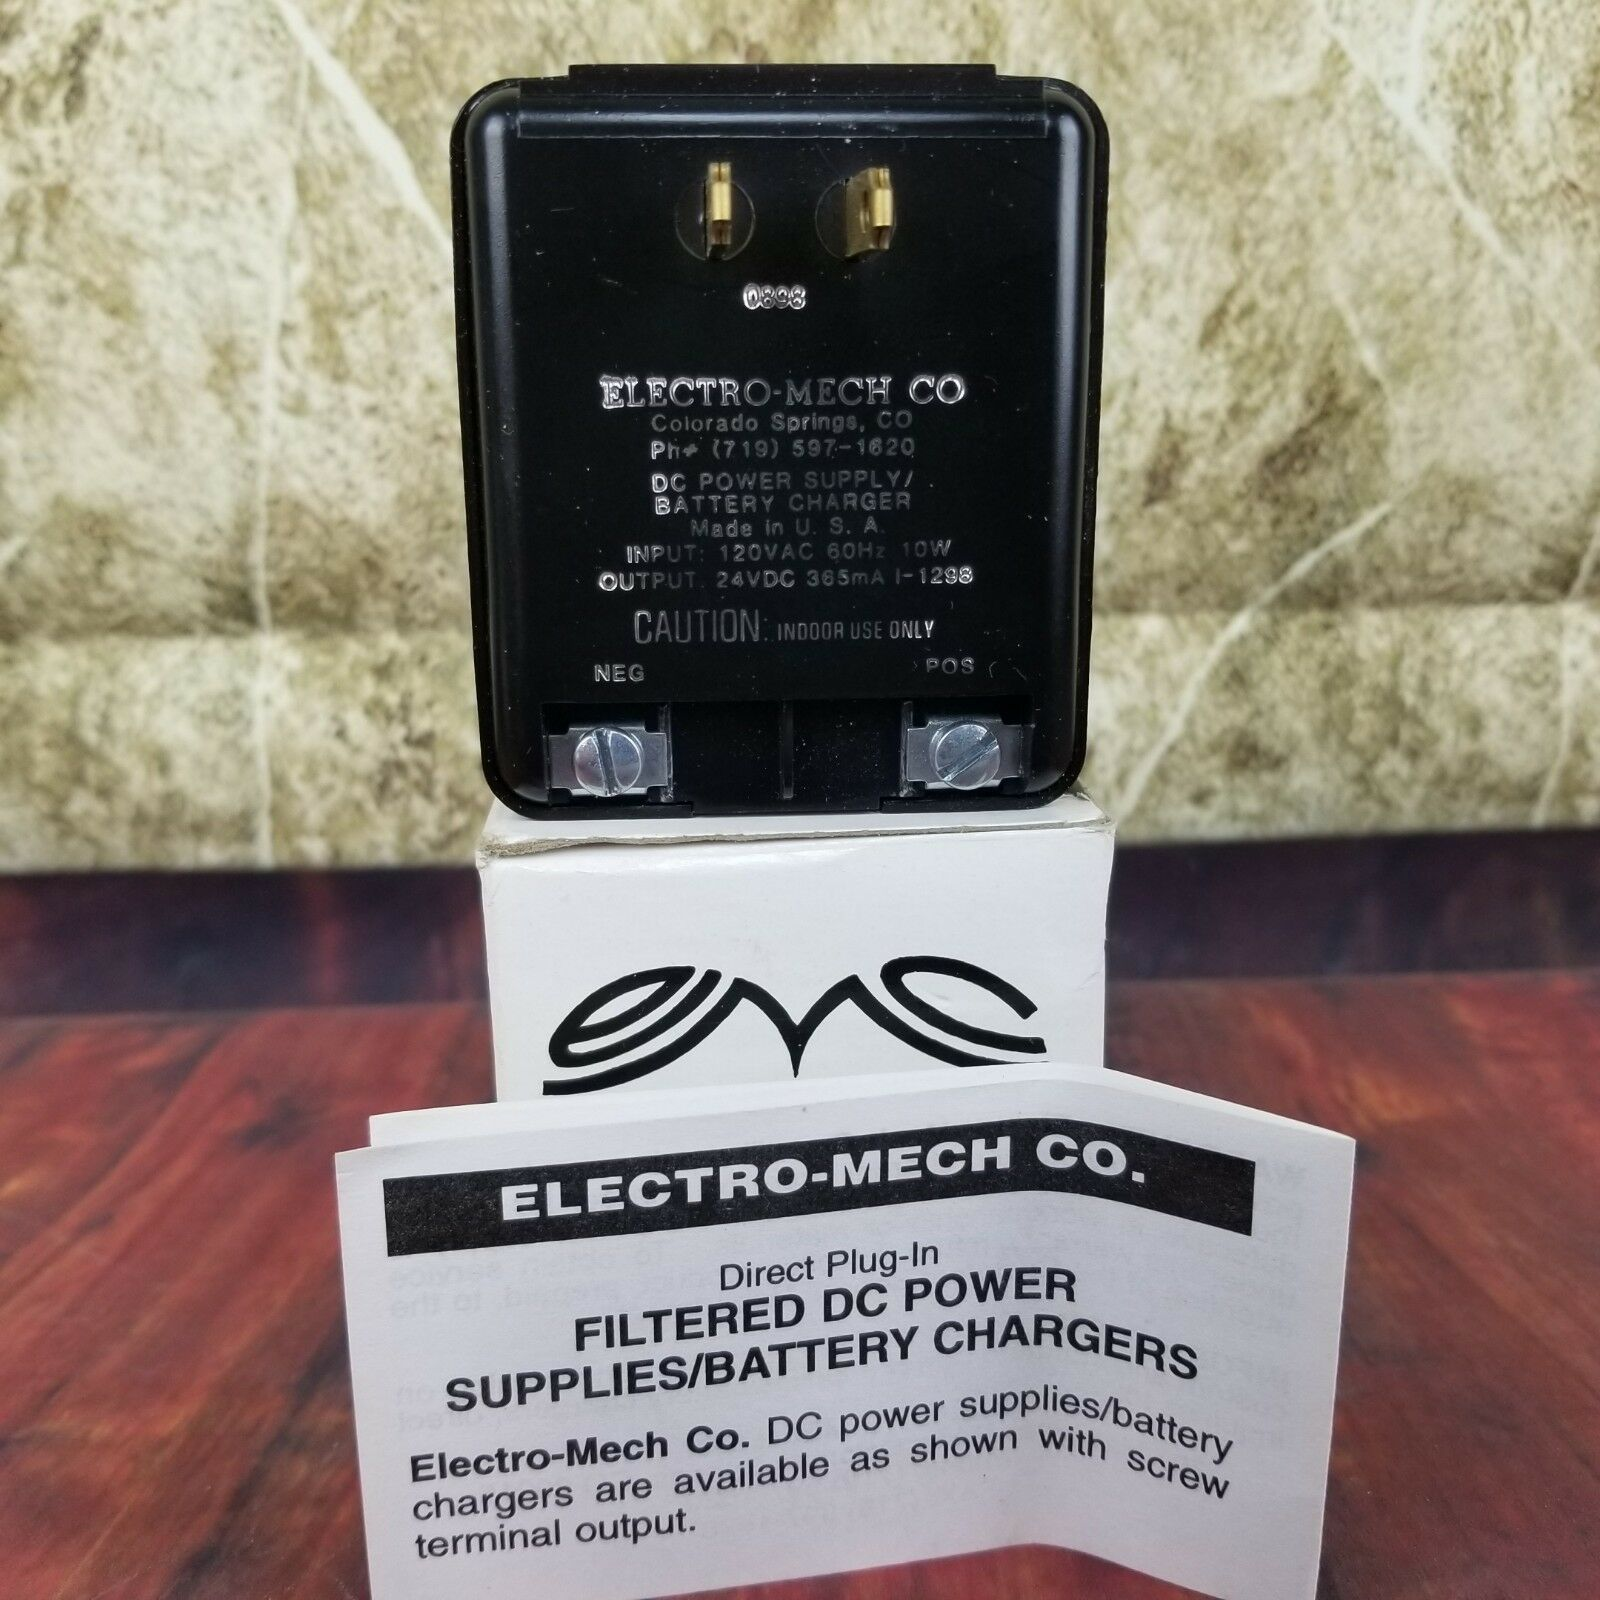 Electro-Mech I-1298 DC Power Supply/Battery Charger Screw Back 24VDC 365ma